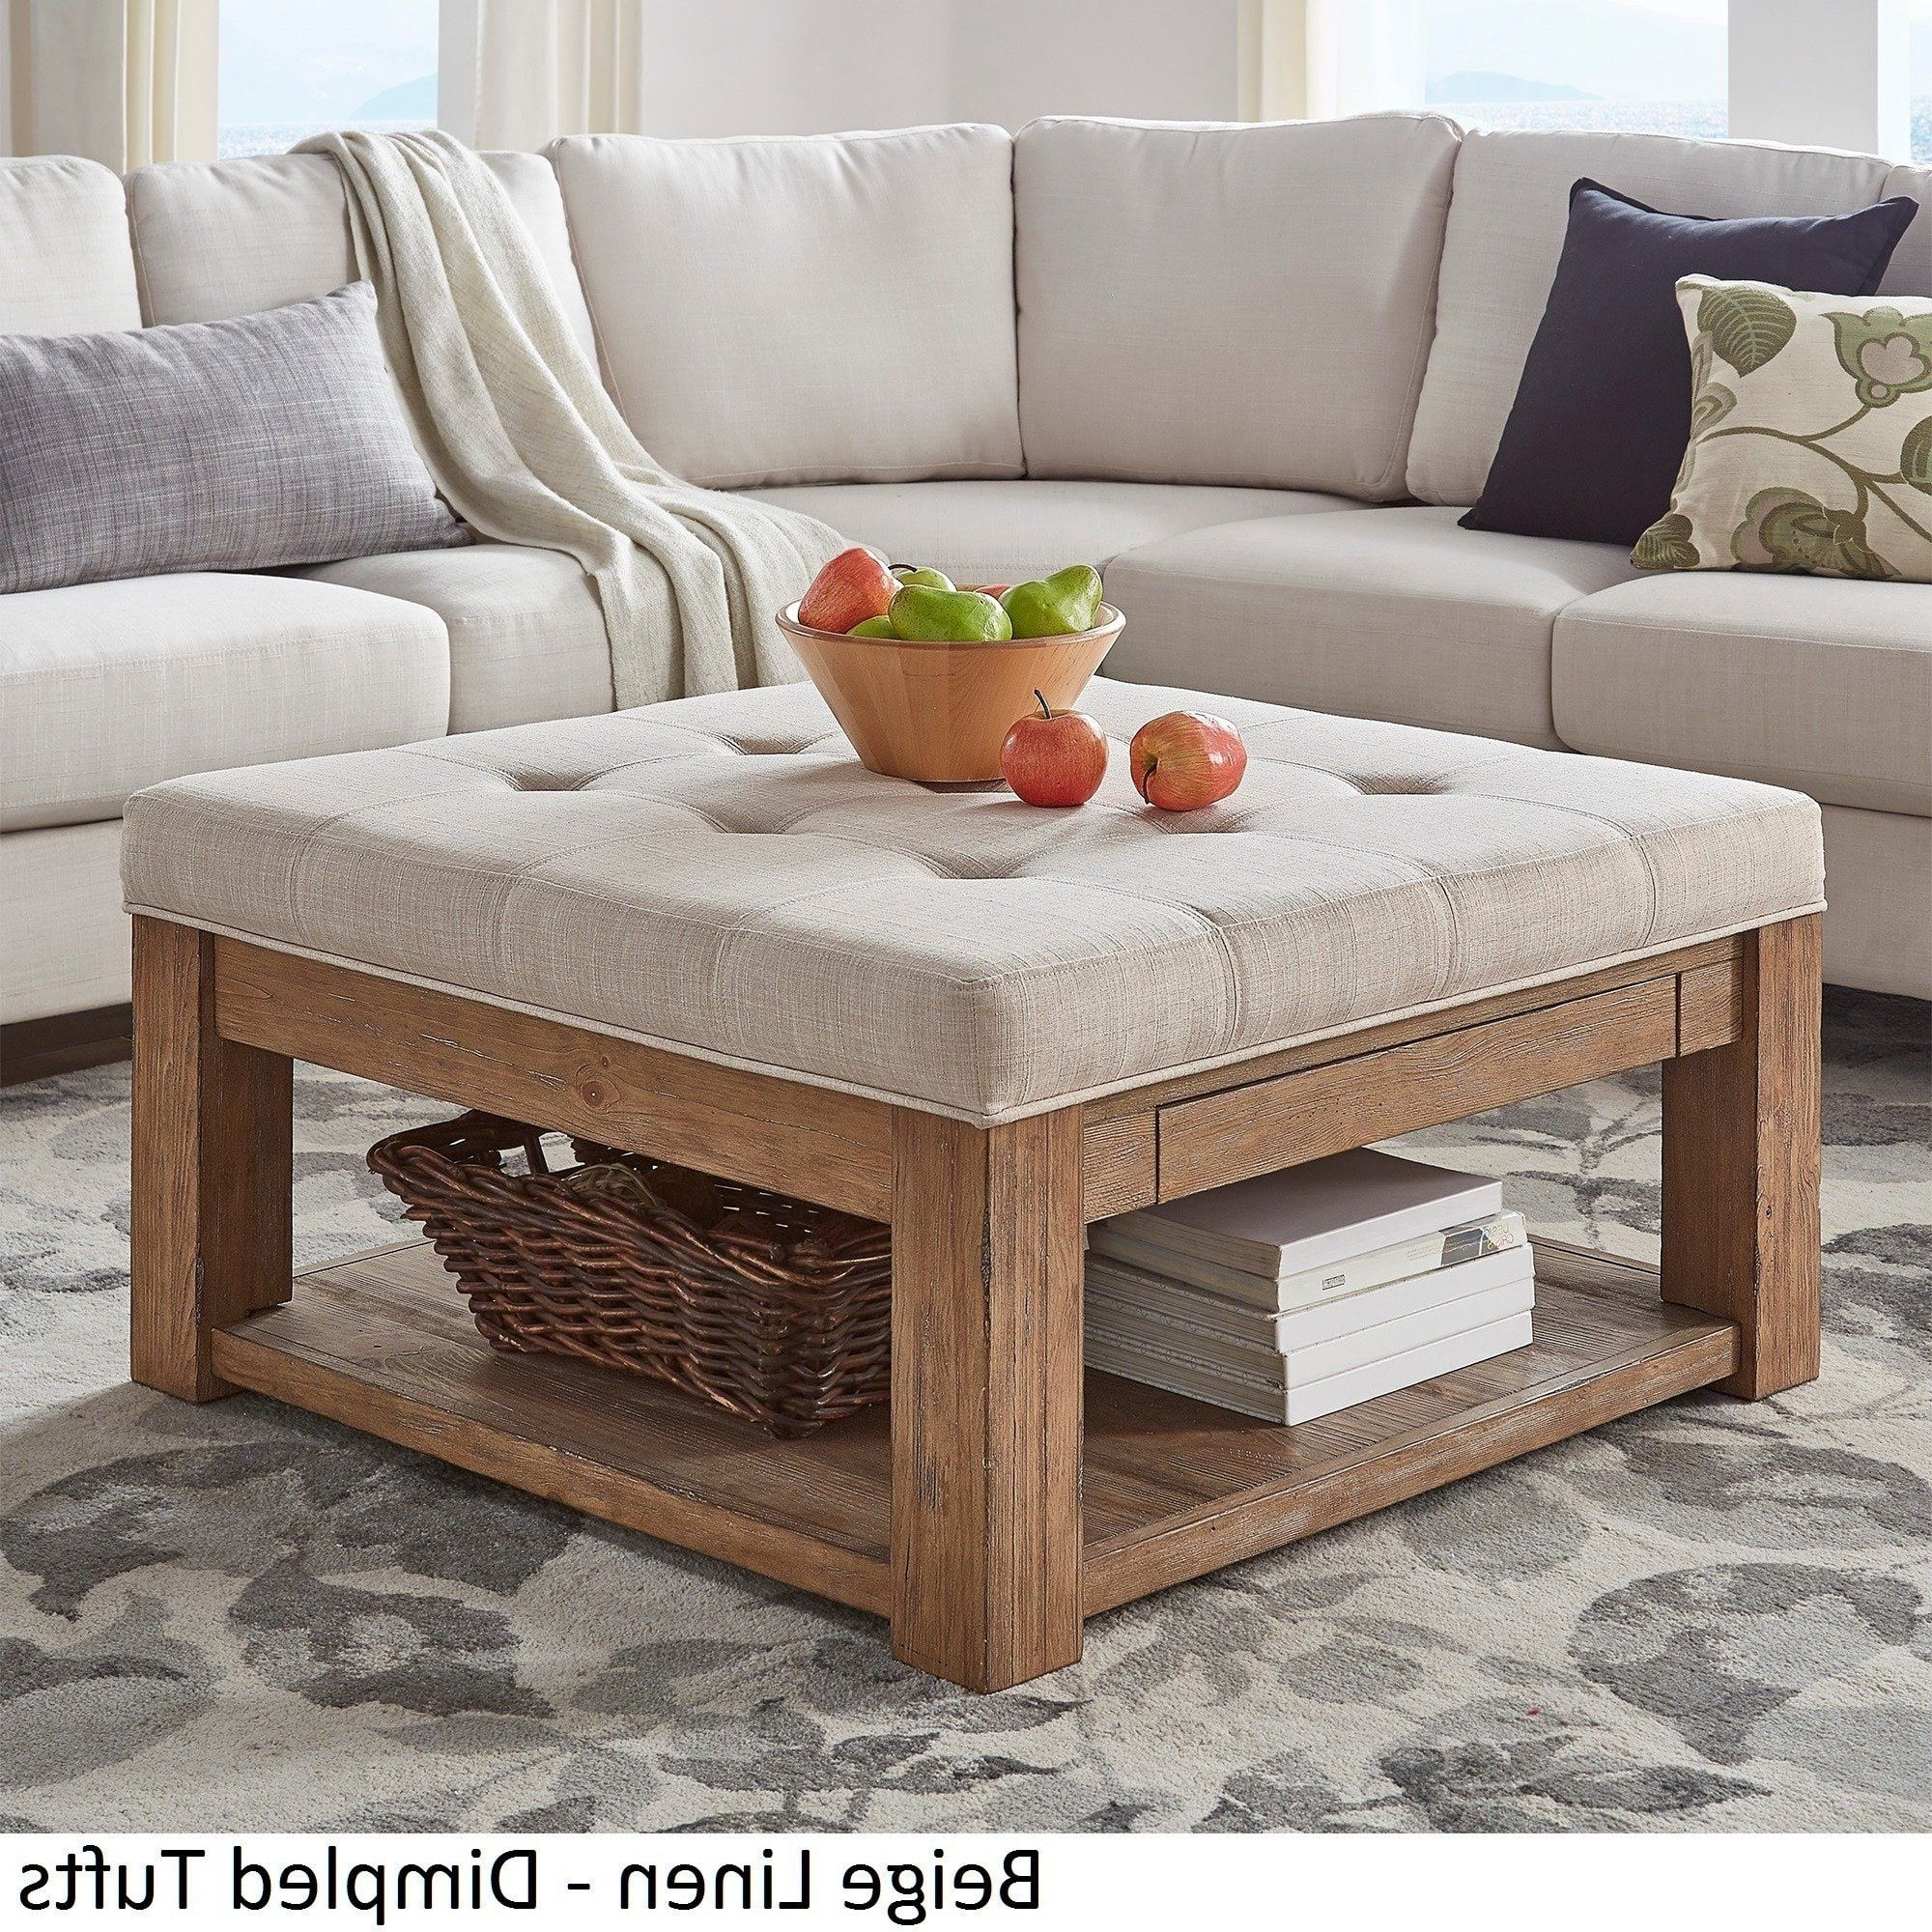 Most Up To Date Lennon Pine Planked Storage Ottoman Coffee Tables Throughout Lennon Pine Square Storage Ottoman Coffee Tableinspire Q (View 9 of 20)